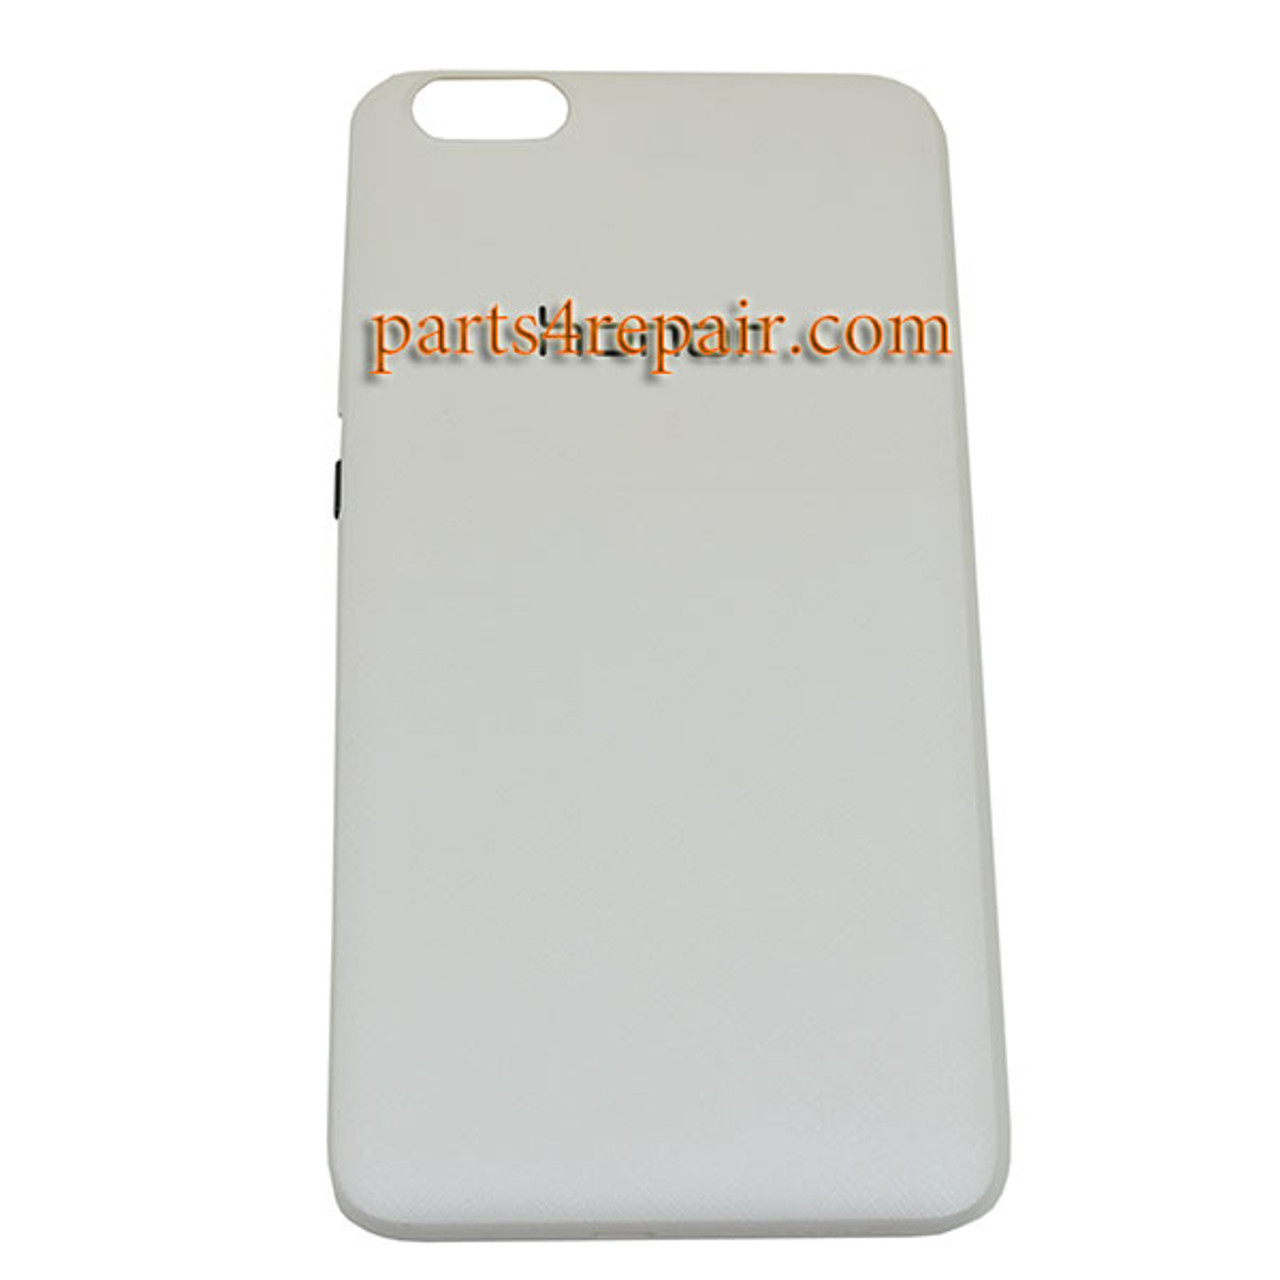 the smallest flexishield huawei honor 4x gel case white selling thousands these